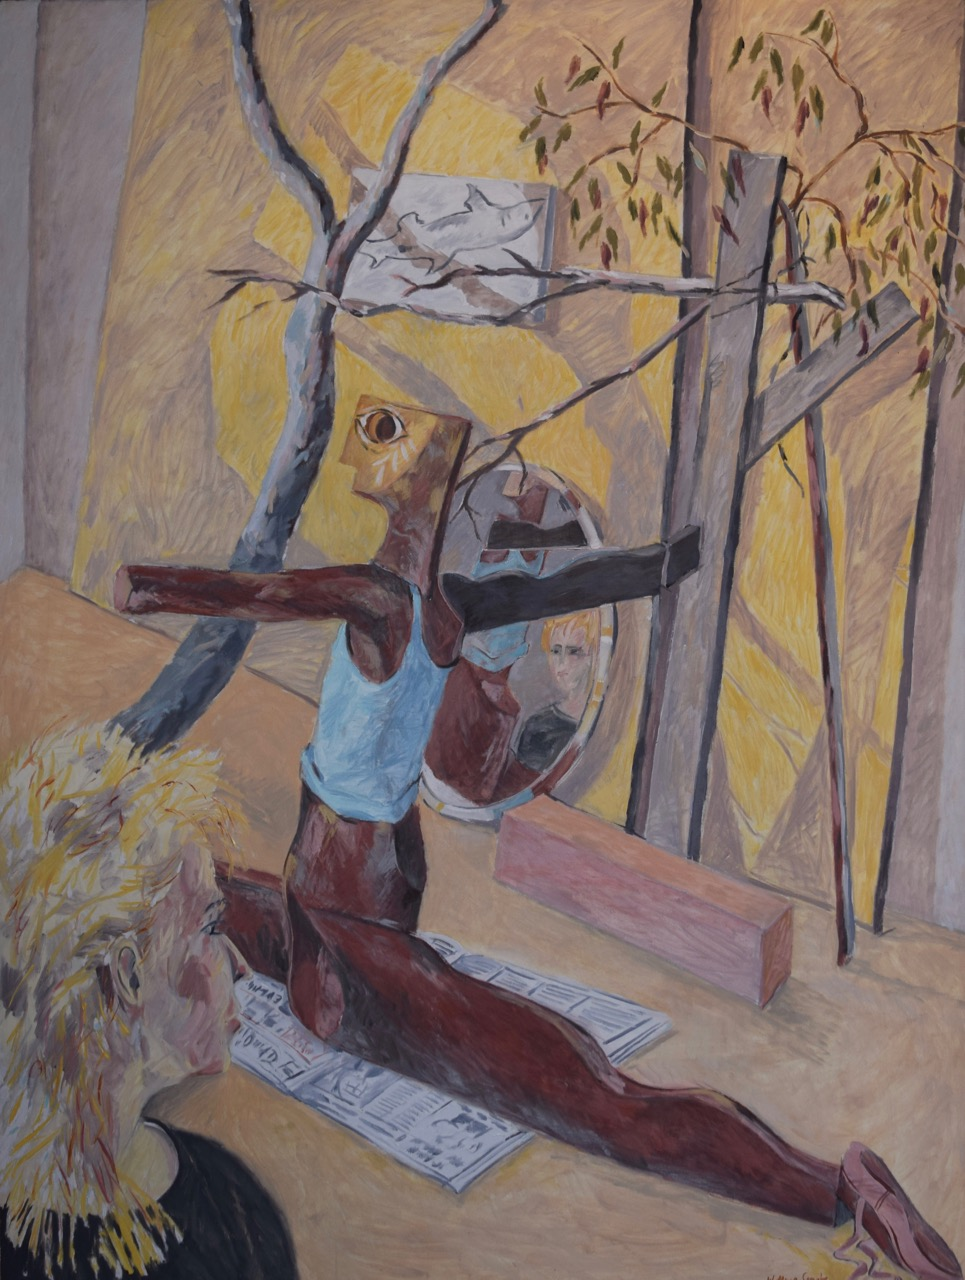 The wooden dancer , oil paint on canvas, 1984